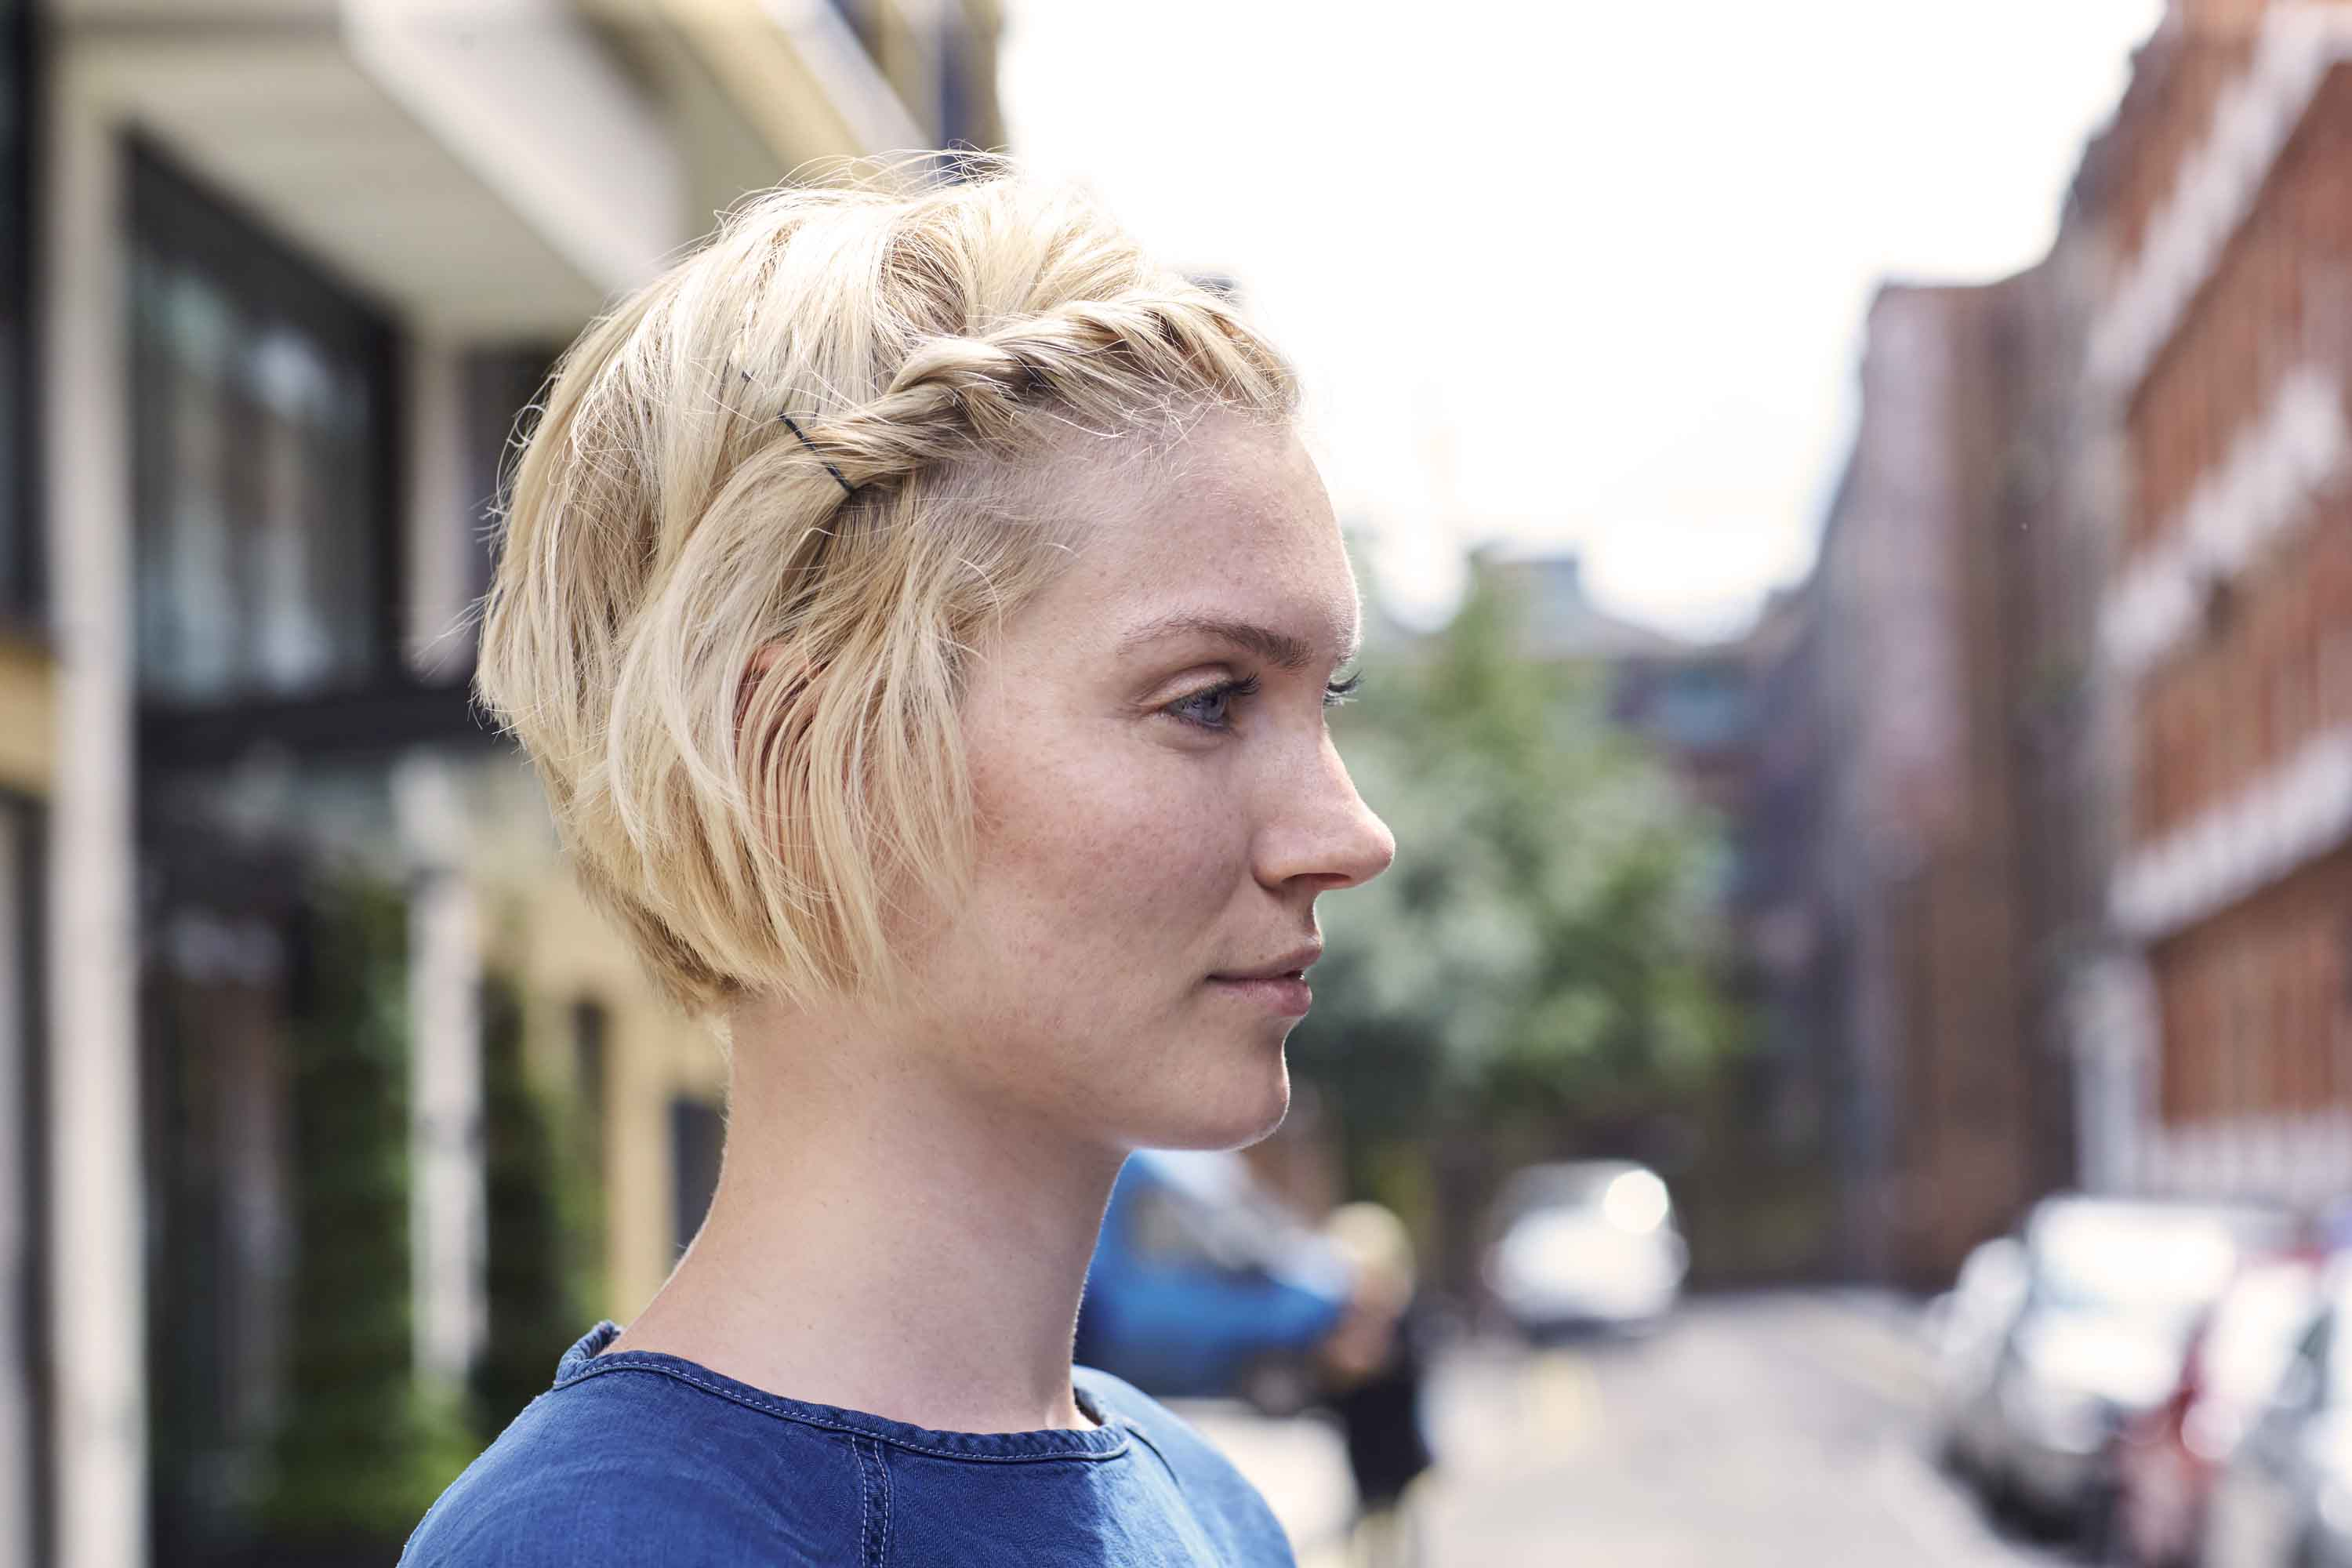 22 Best Short Blonde Hairstyles That Are Trending